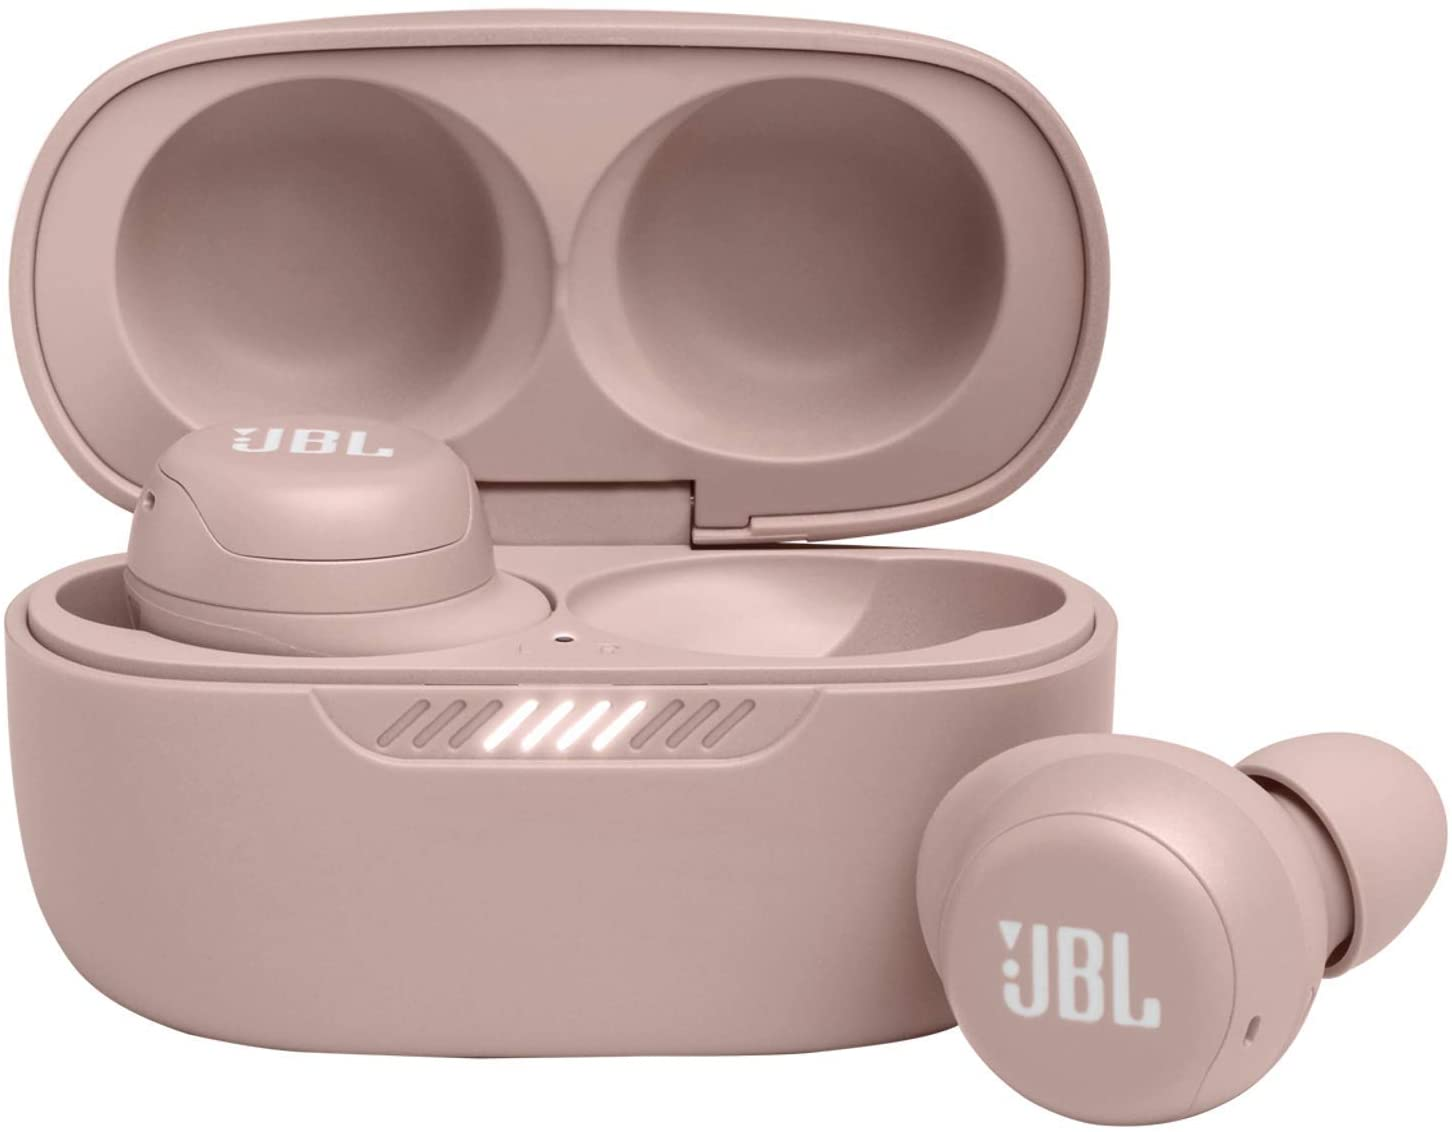 Jbl Live Free Nc+ True Wireless In-ear Nc Headphones